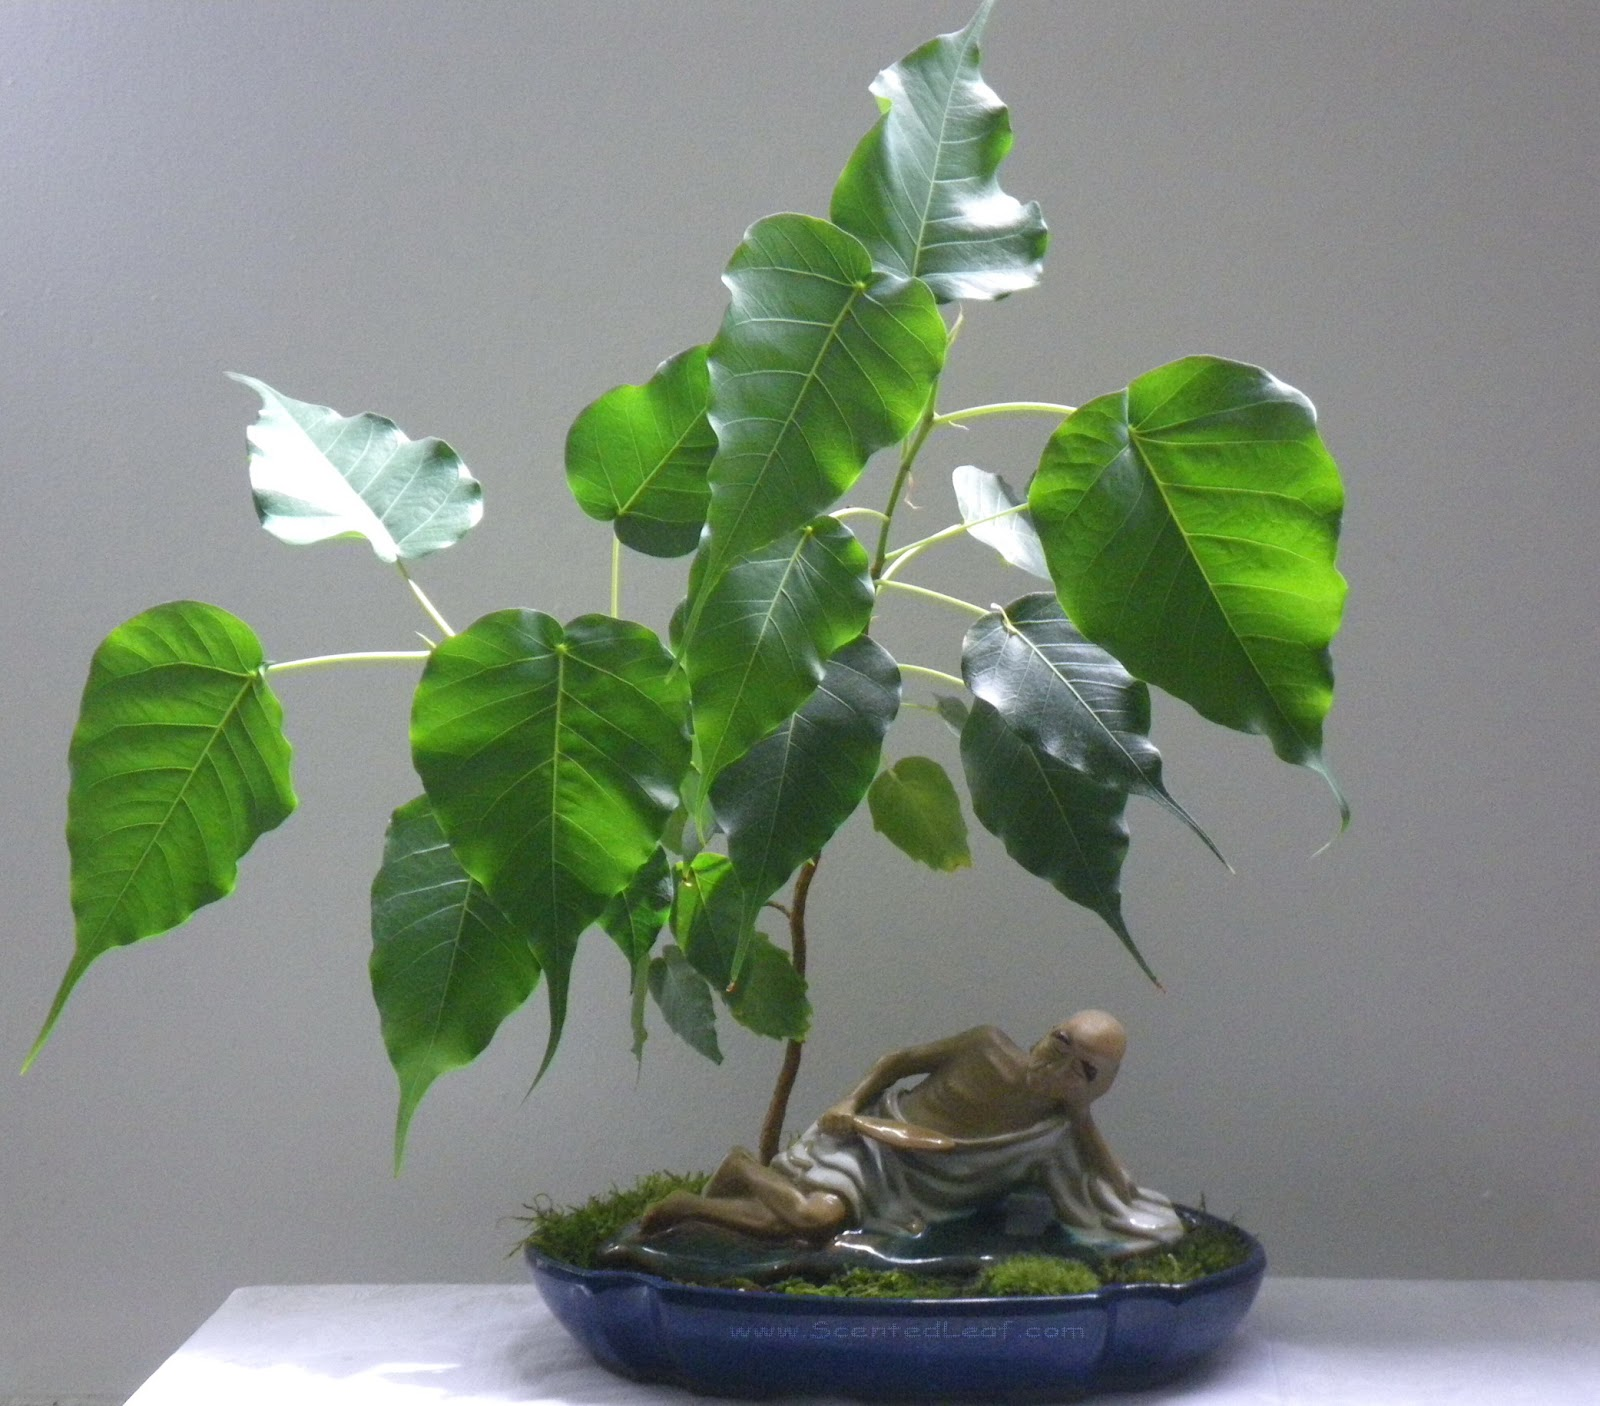 Scented Leaf Ficus Religiosa Bonsai